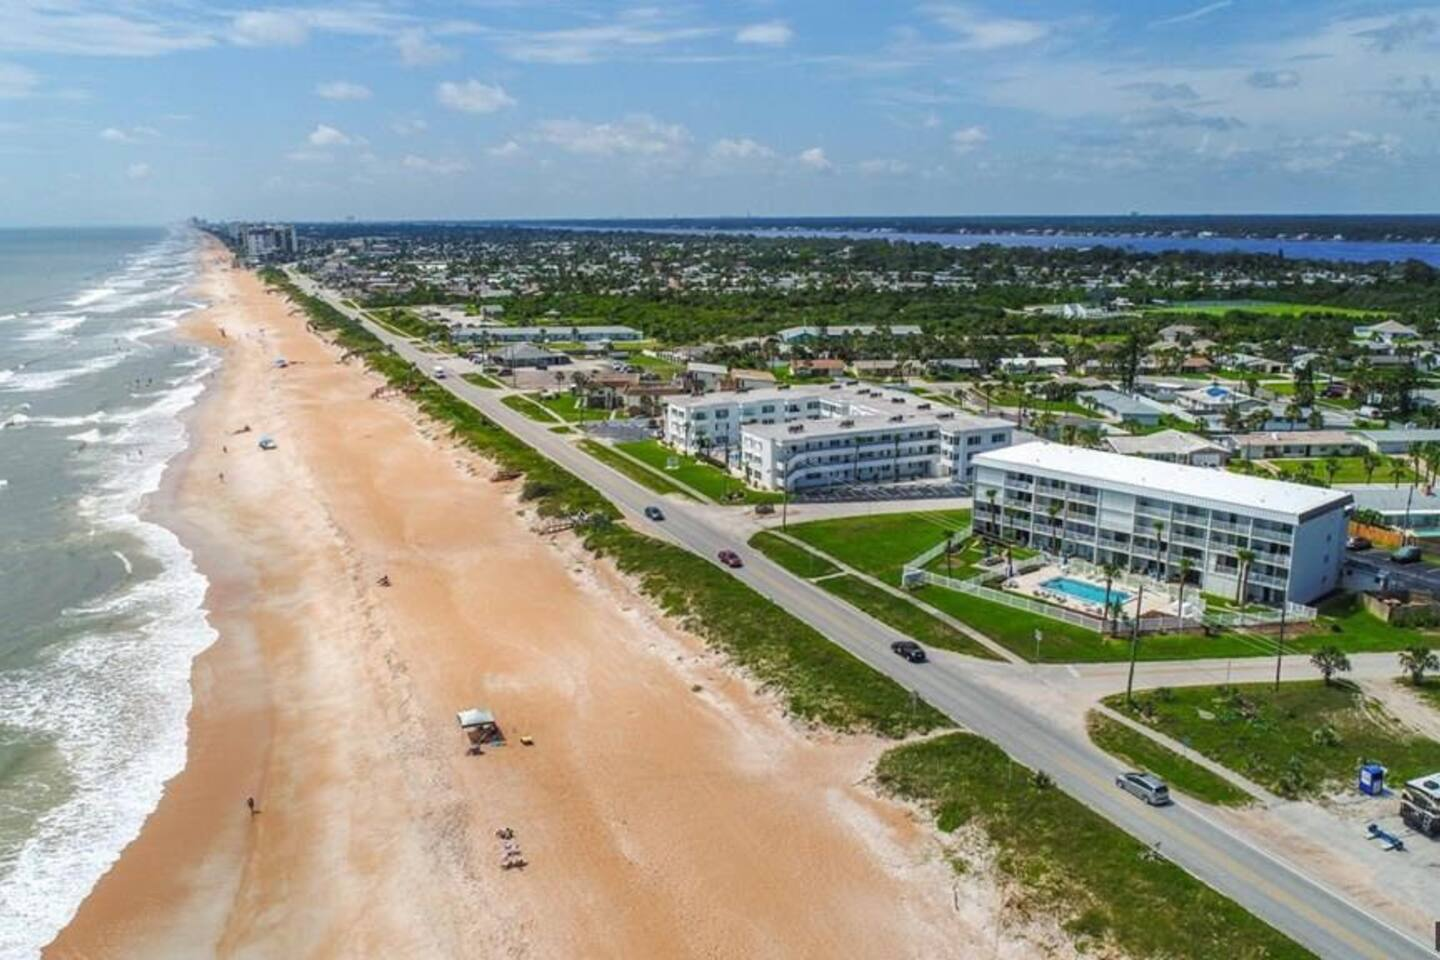 Aerial view of condo located directly on highly desirable Ocean Shore Blvd. This gorgeous condo offers direct views of the ocean from the main floor living space, patio and the master bedroom and deck.